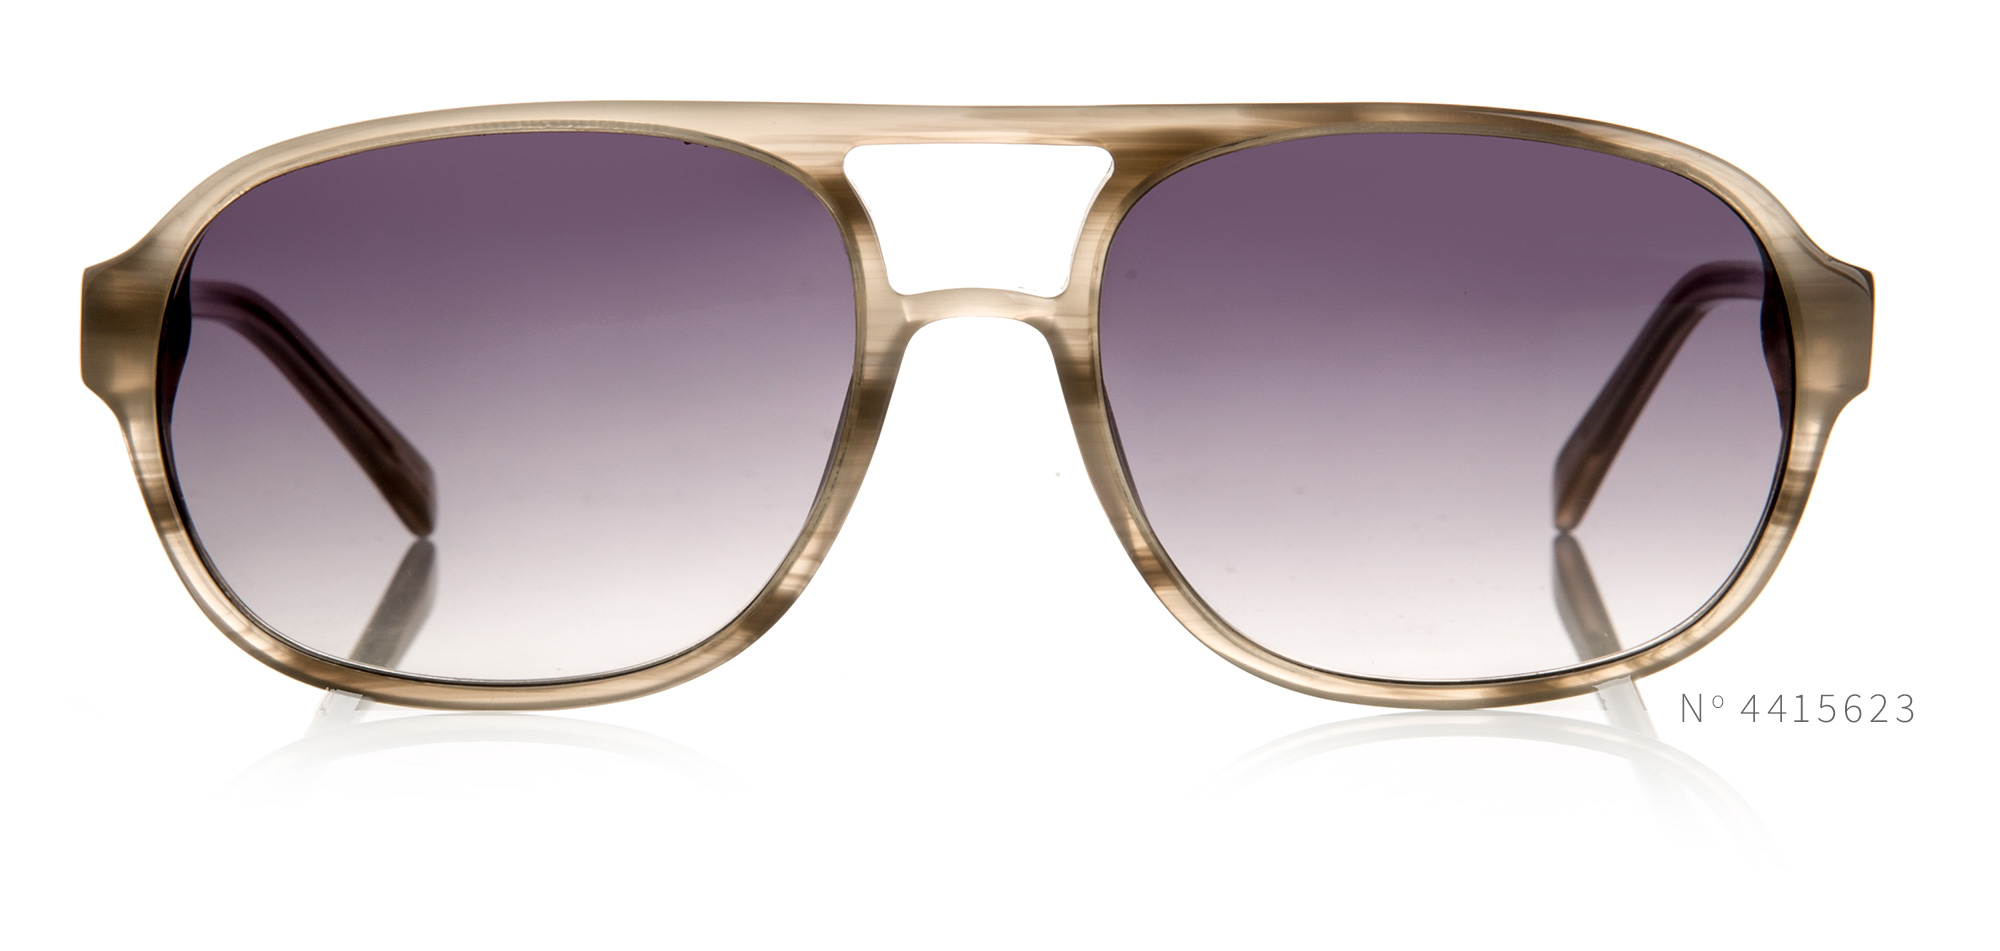 6a3d47425bc A Guide to Spring 2016 Eyewear Fashion